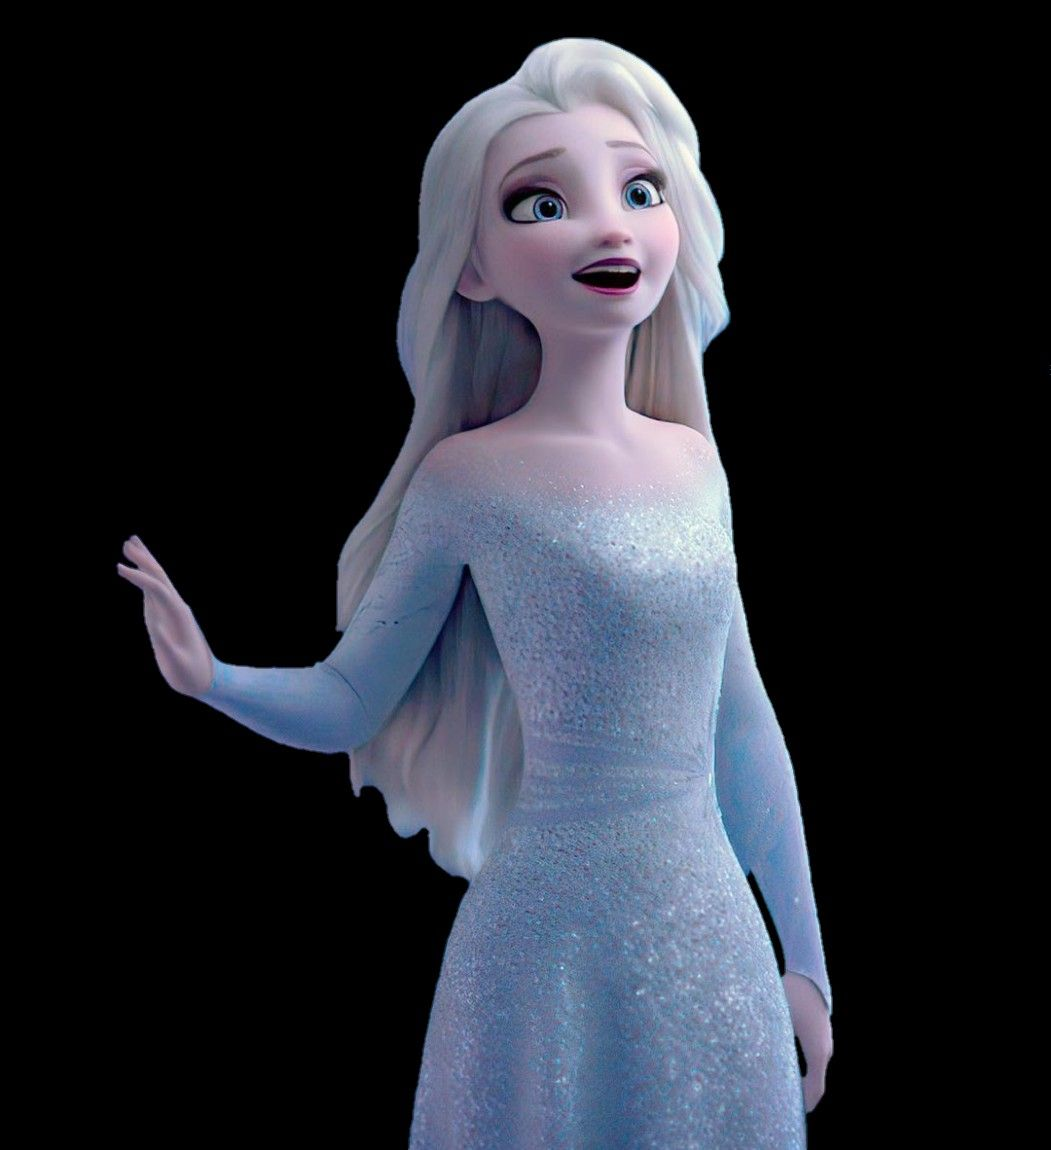 Pin By Katy K On Frozen Edits In 2020 Fashion Design Drawings Disney Princess Pictures Disney Princess Gif